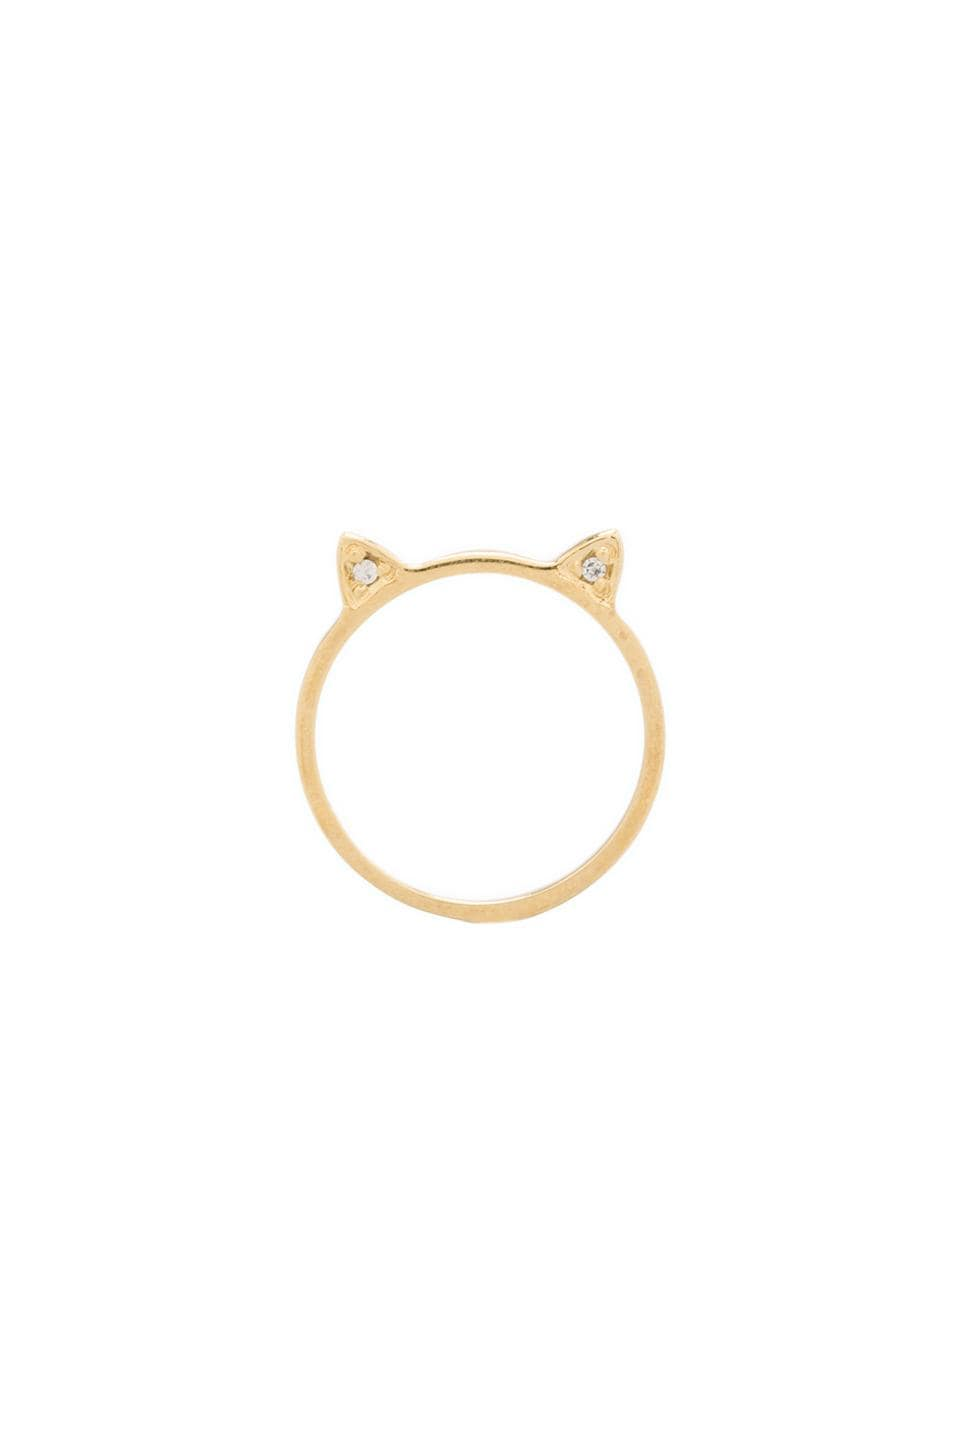 Jacquie Aiche CZ Kitty Ring in Gold Vermeil